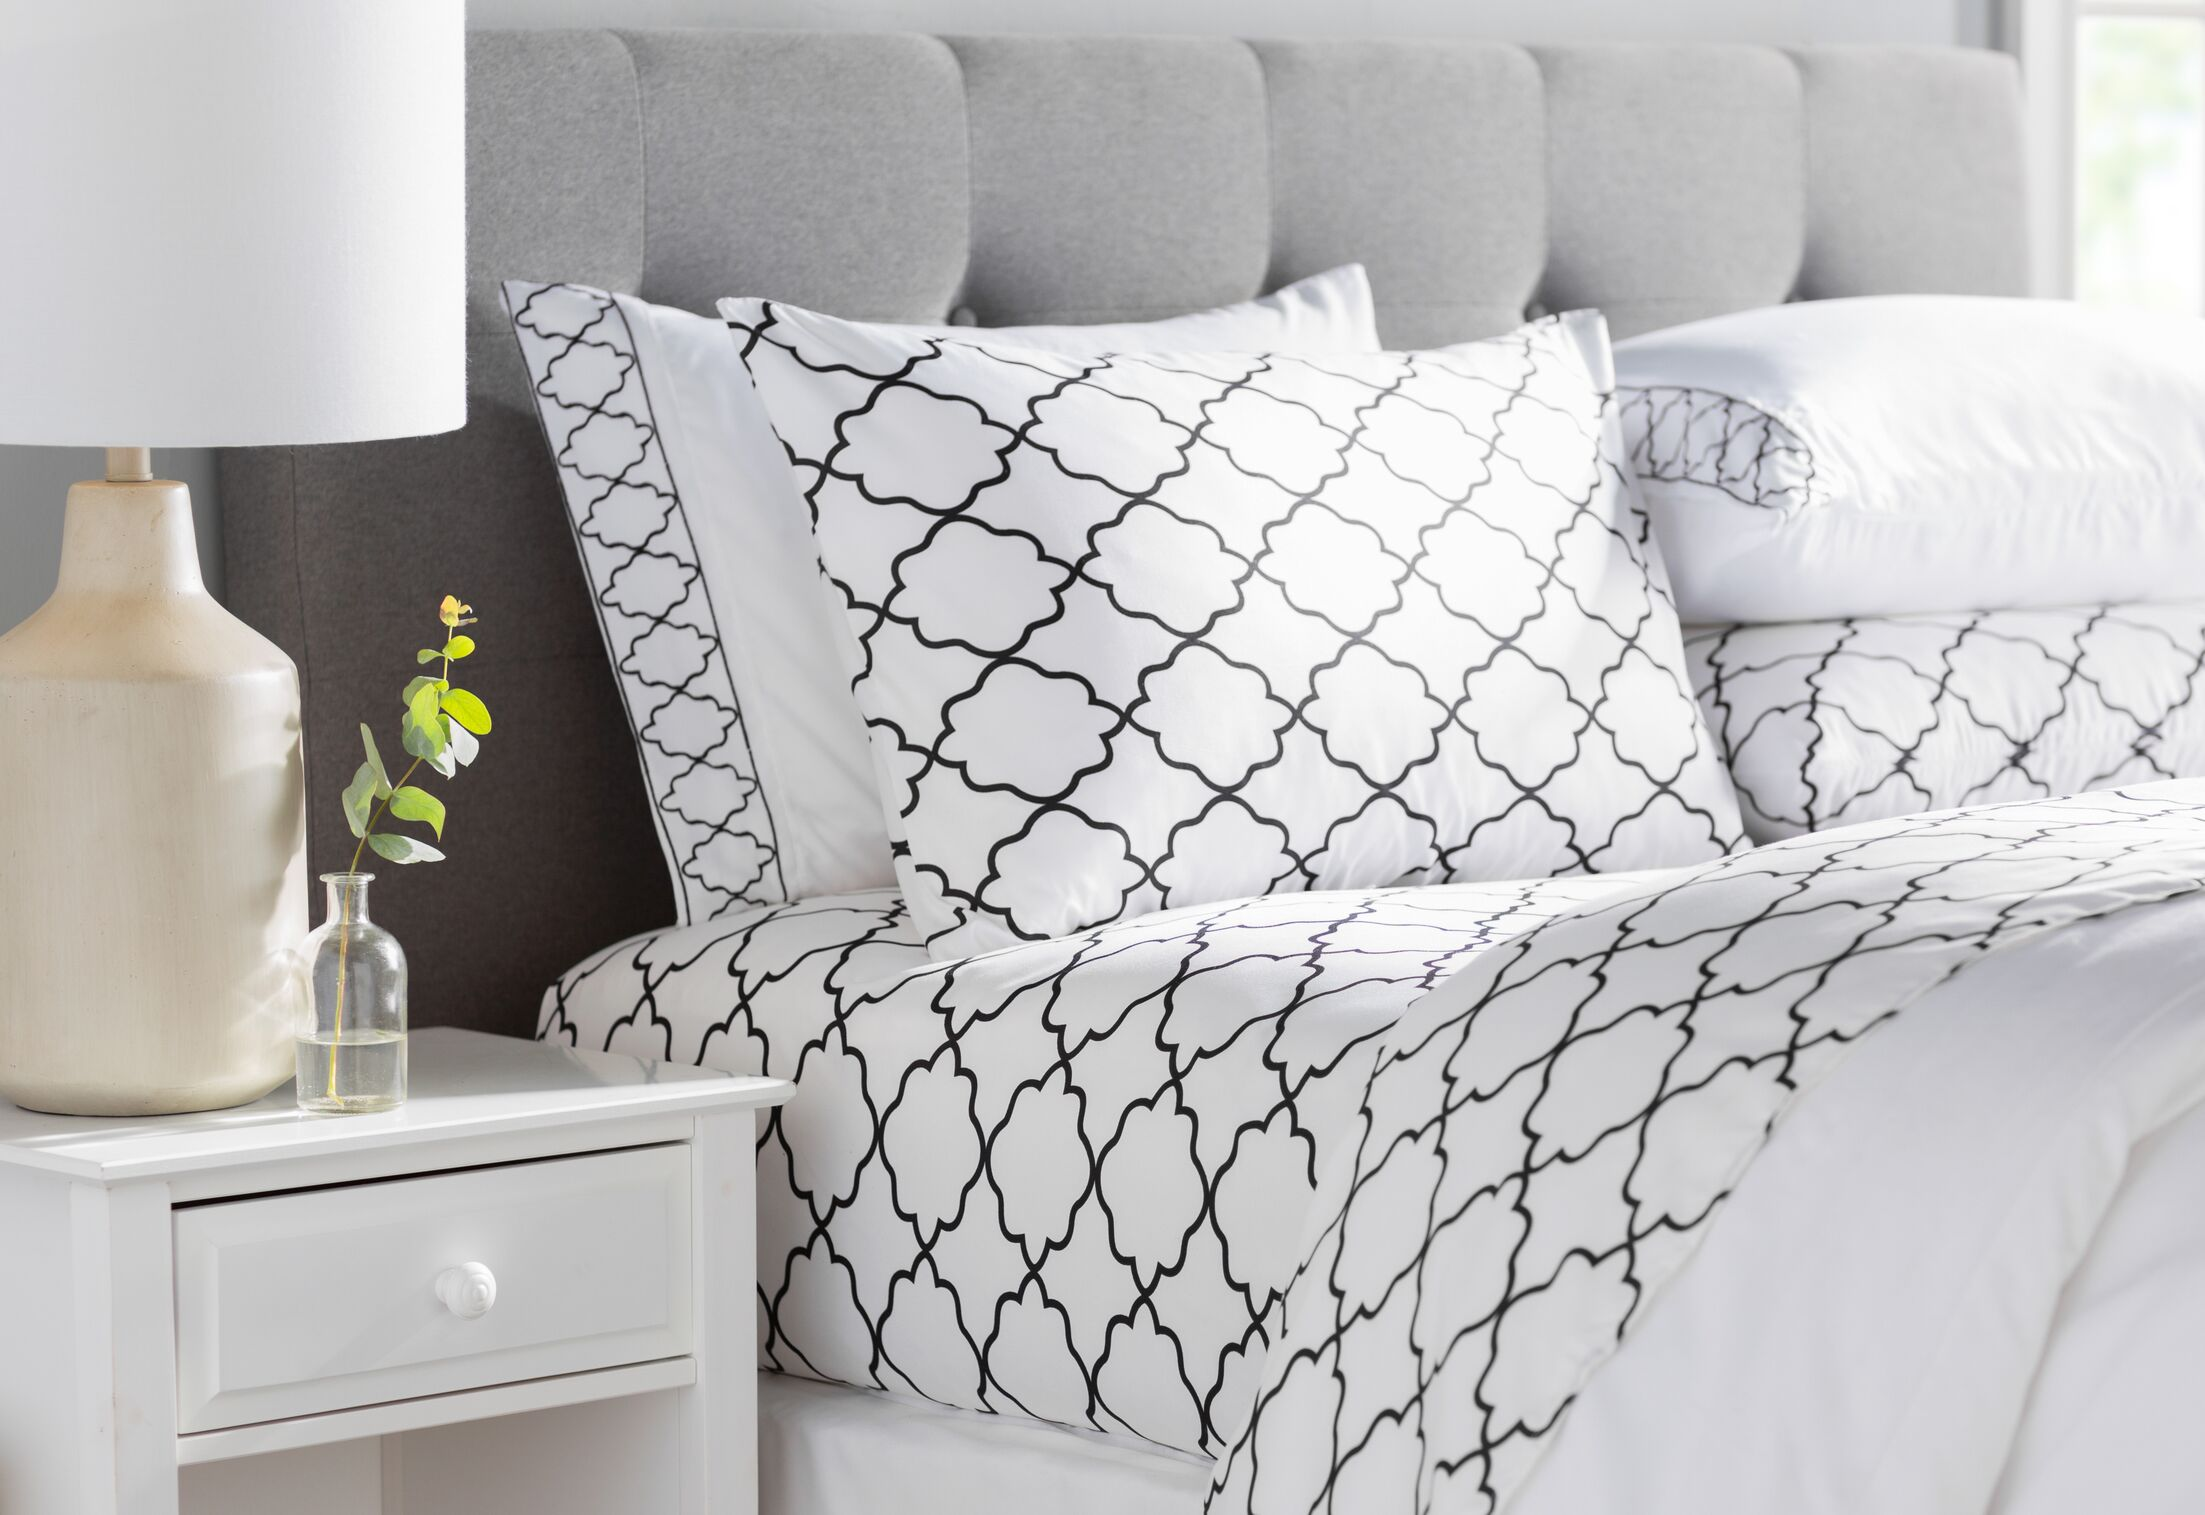 Wayfair Basics Embroidered Trellis 6 Piece Sheet Set Size: Twin, Color: White/Black